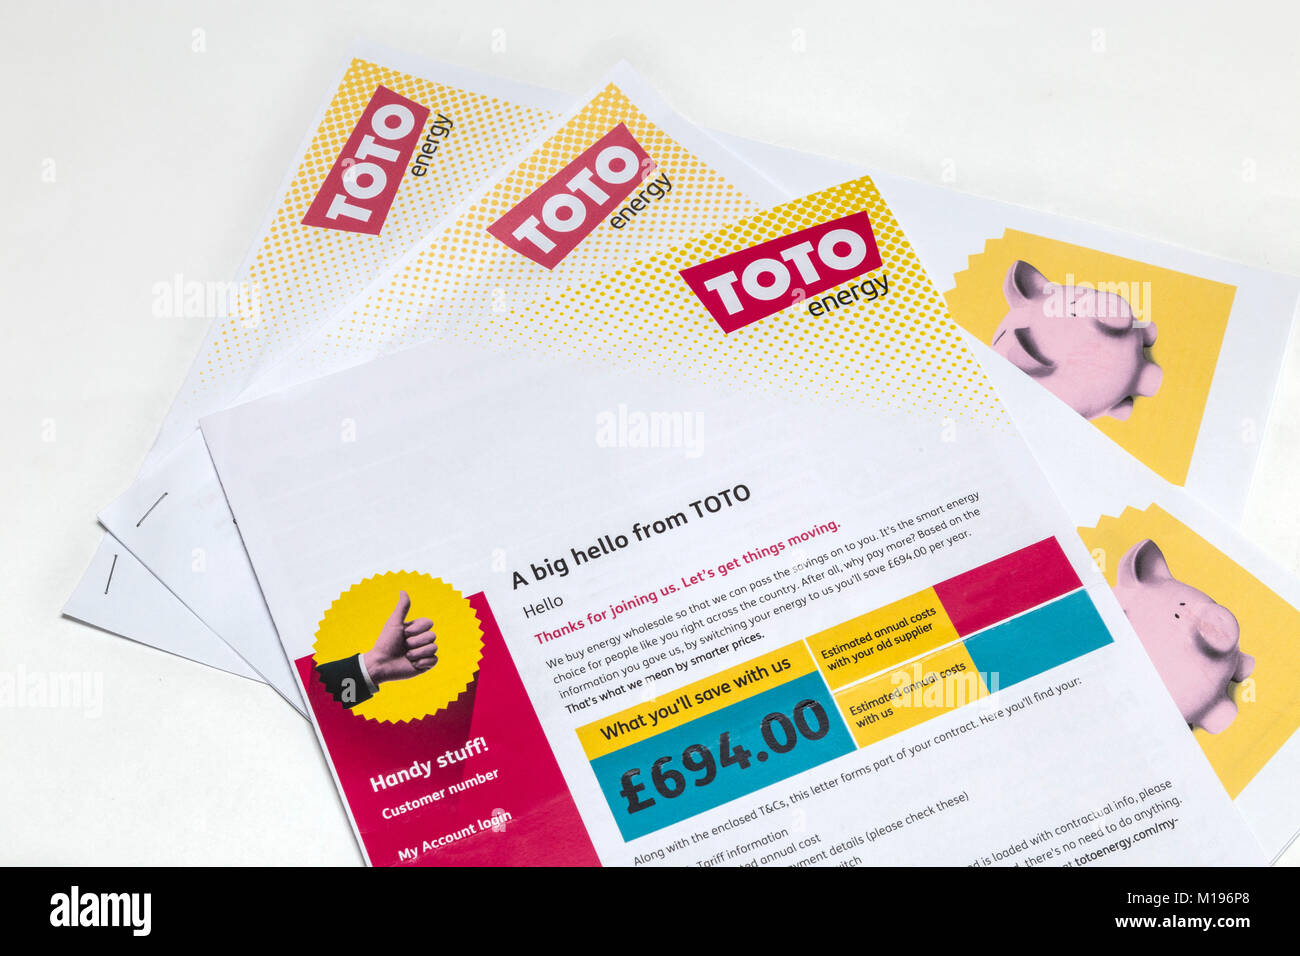 TOTO energy literature.Toto, a small supplier based in Brighton ...